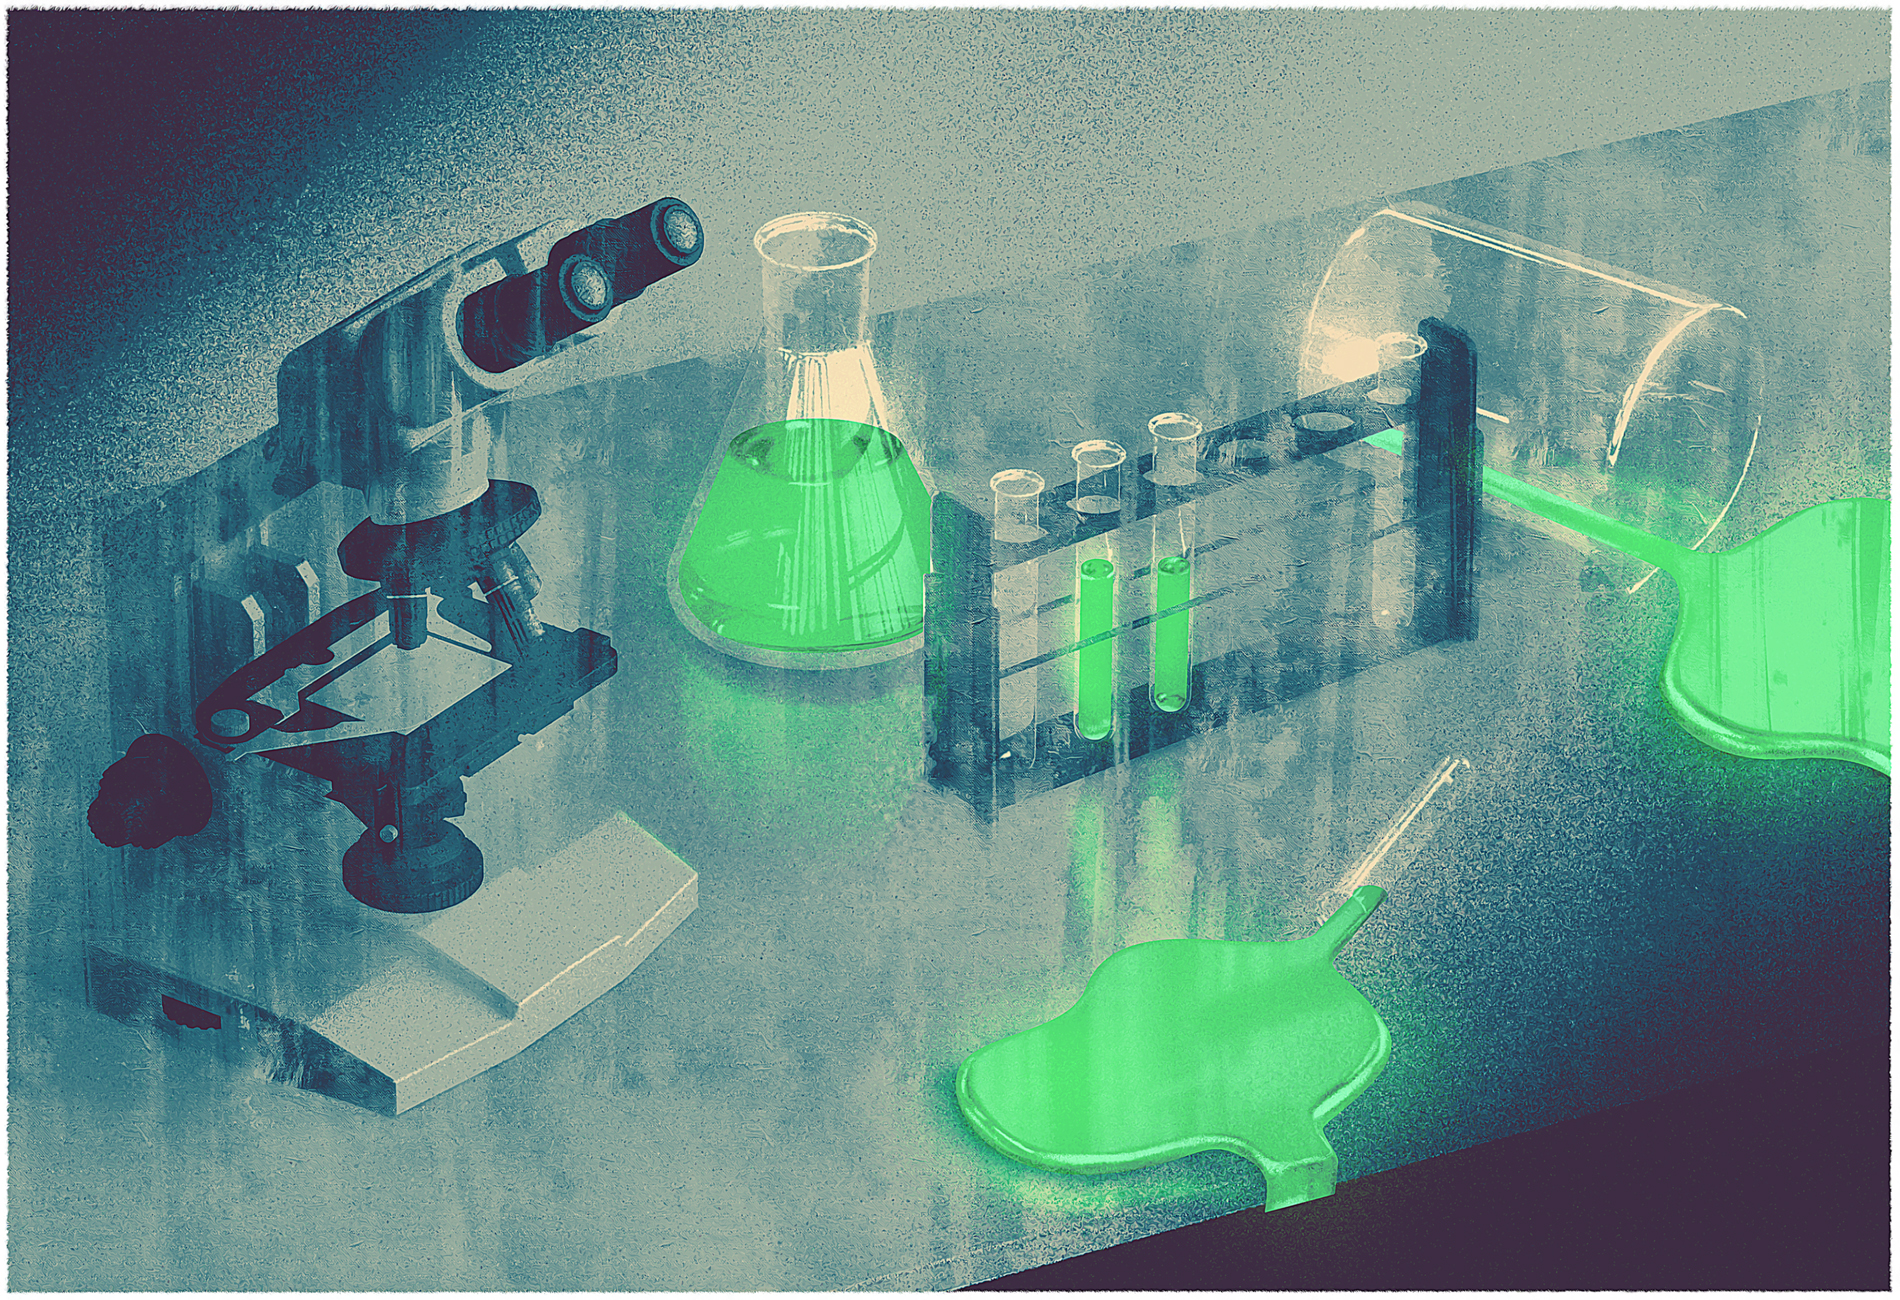 Lab scene with glowing liquid in vials